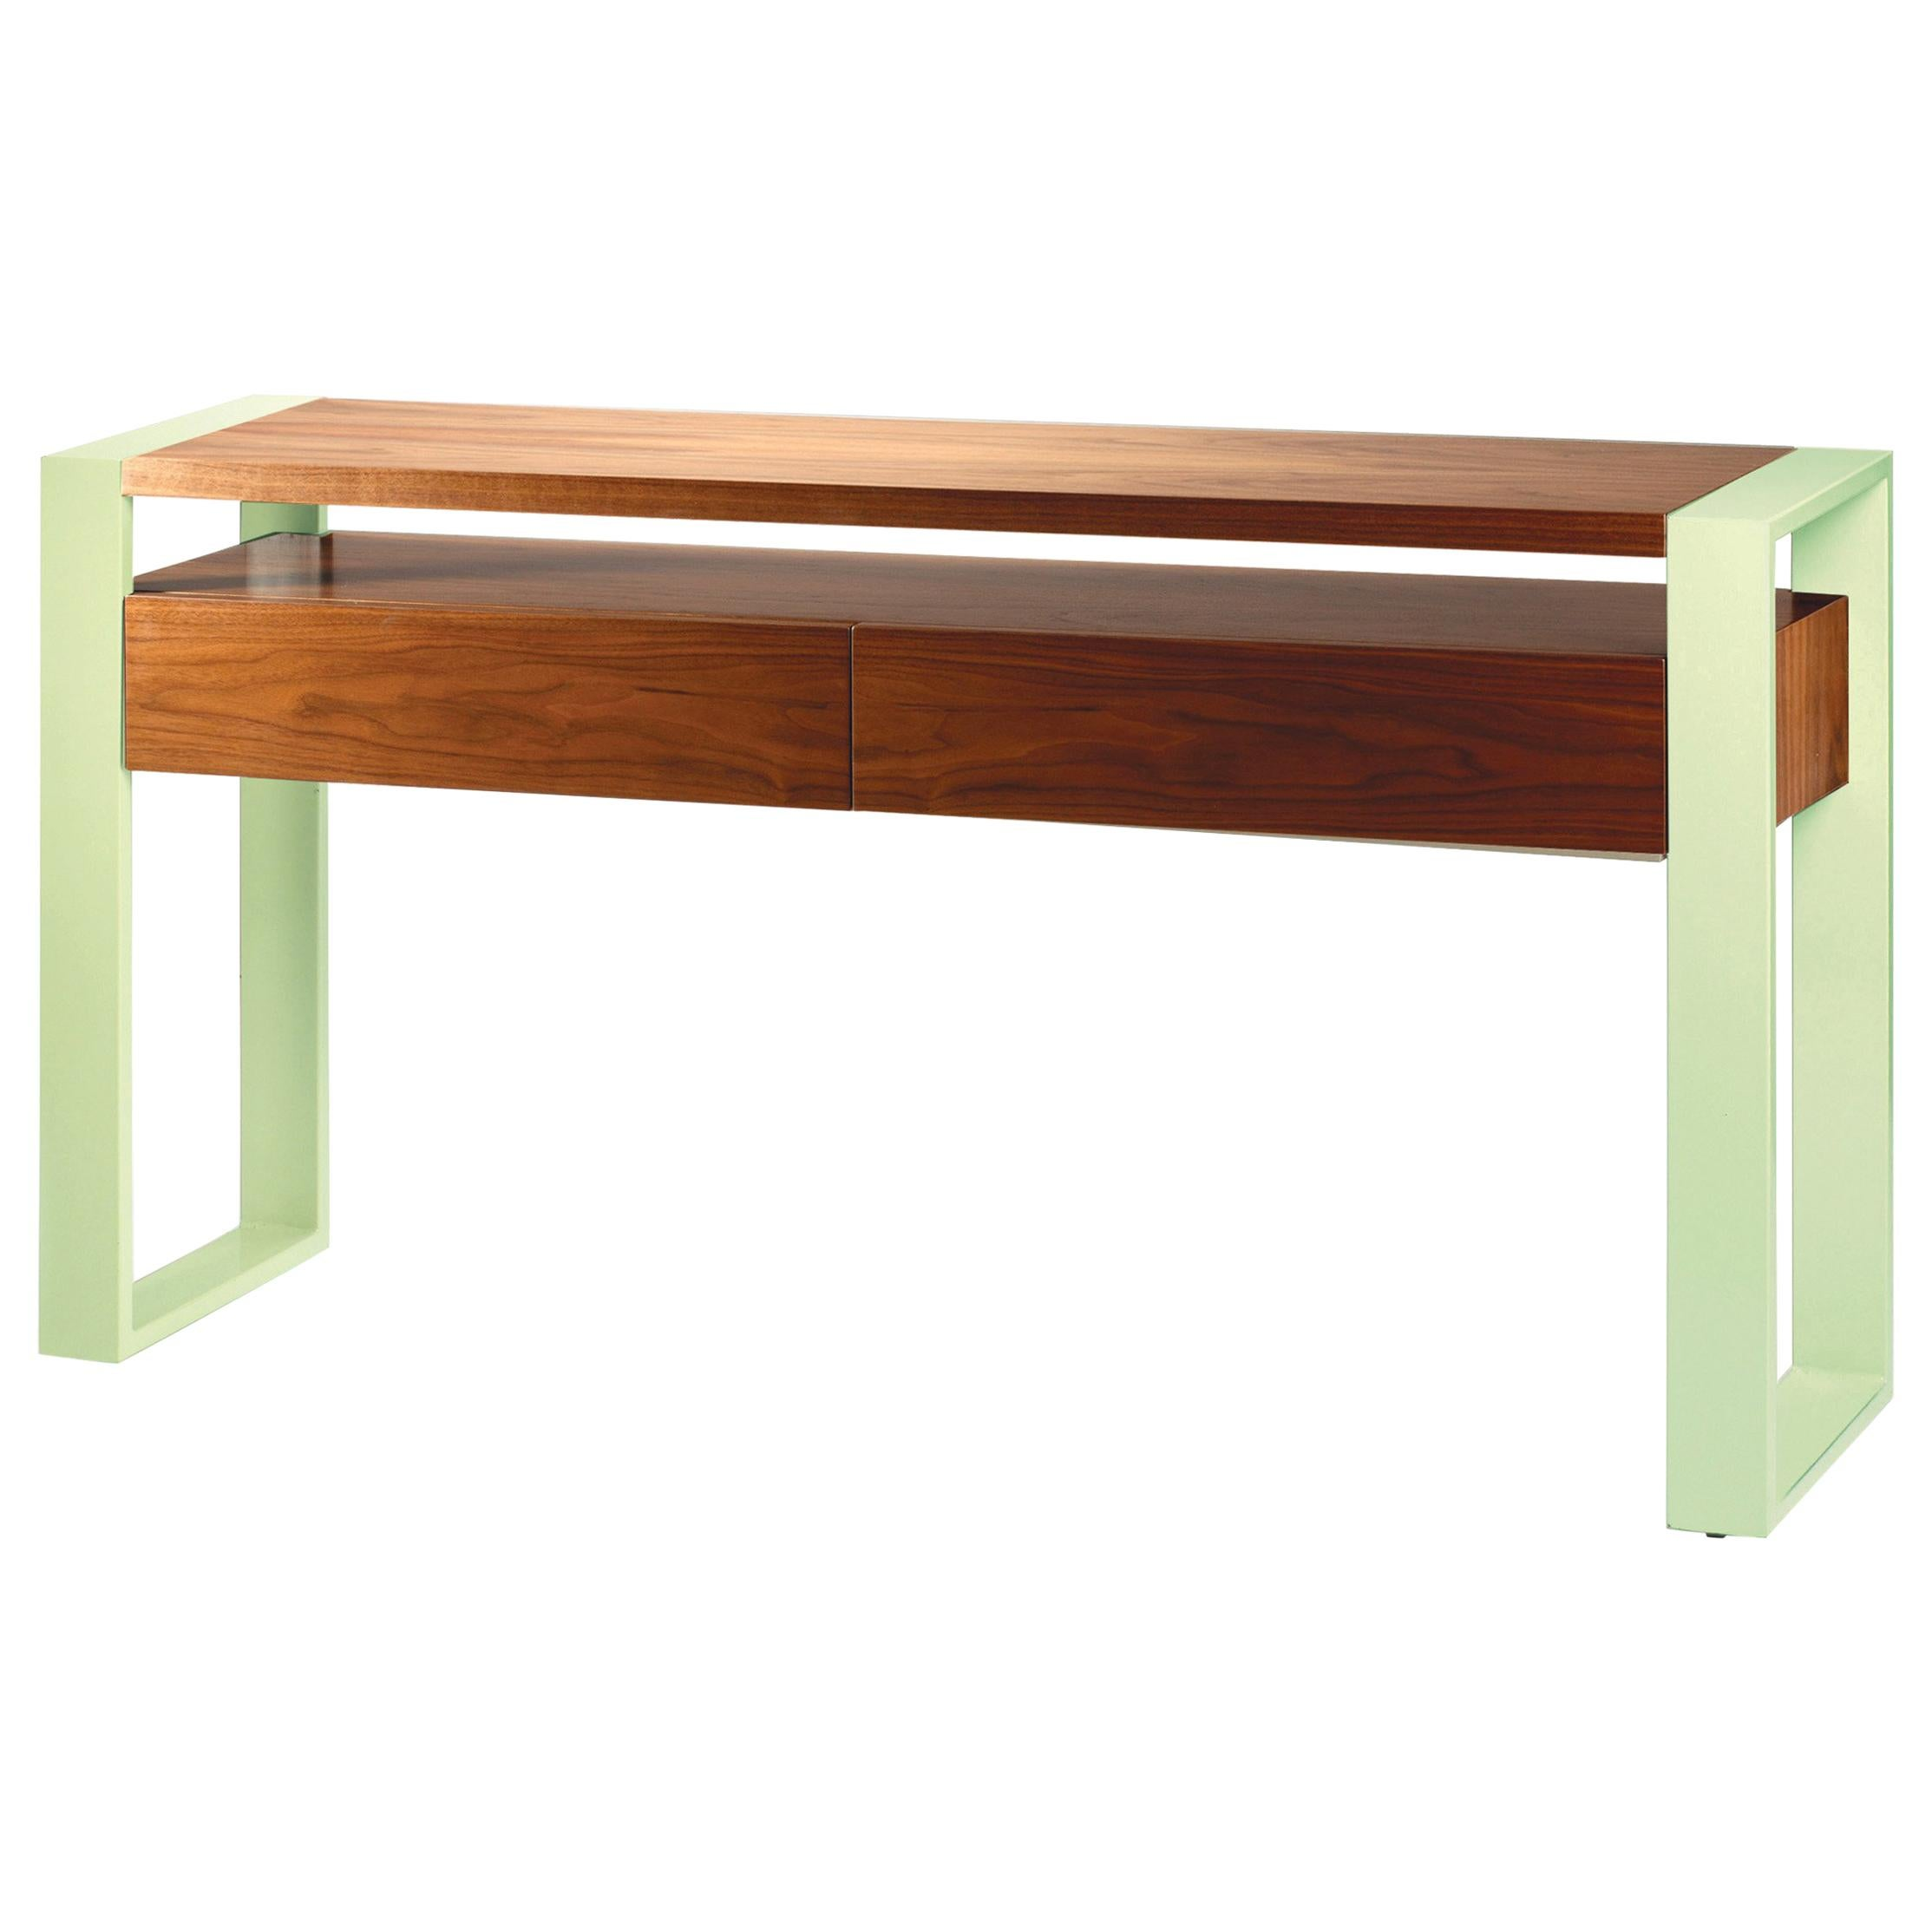 Console Table Iron in Wood and Lacquered Metal